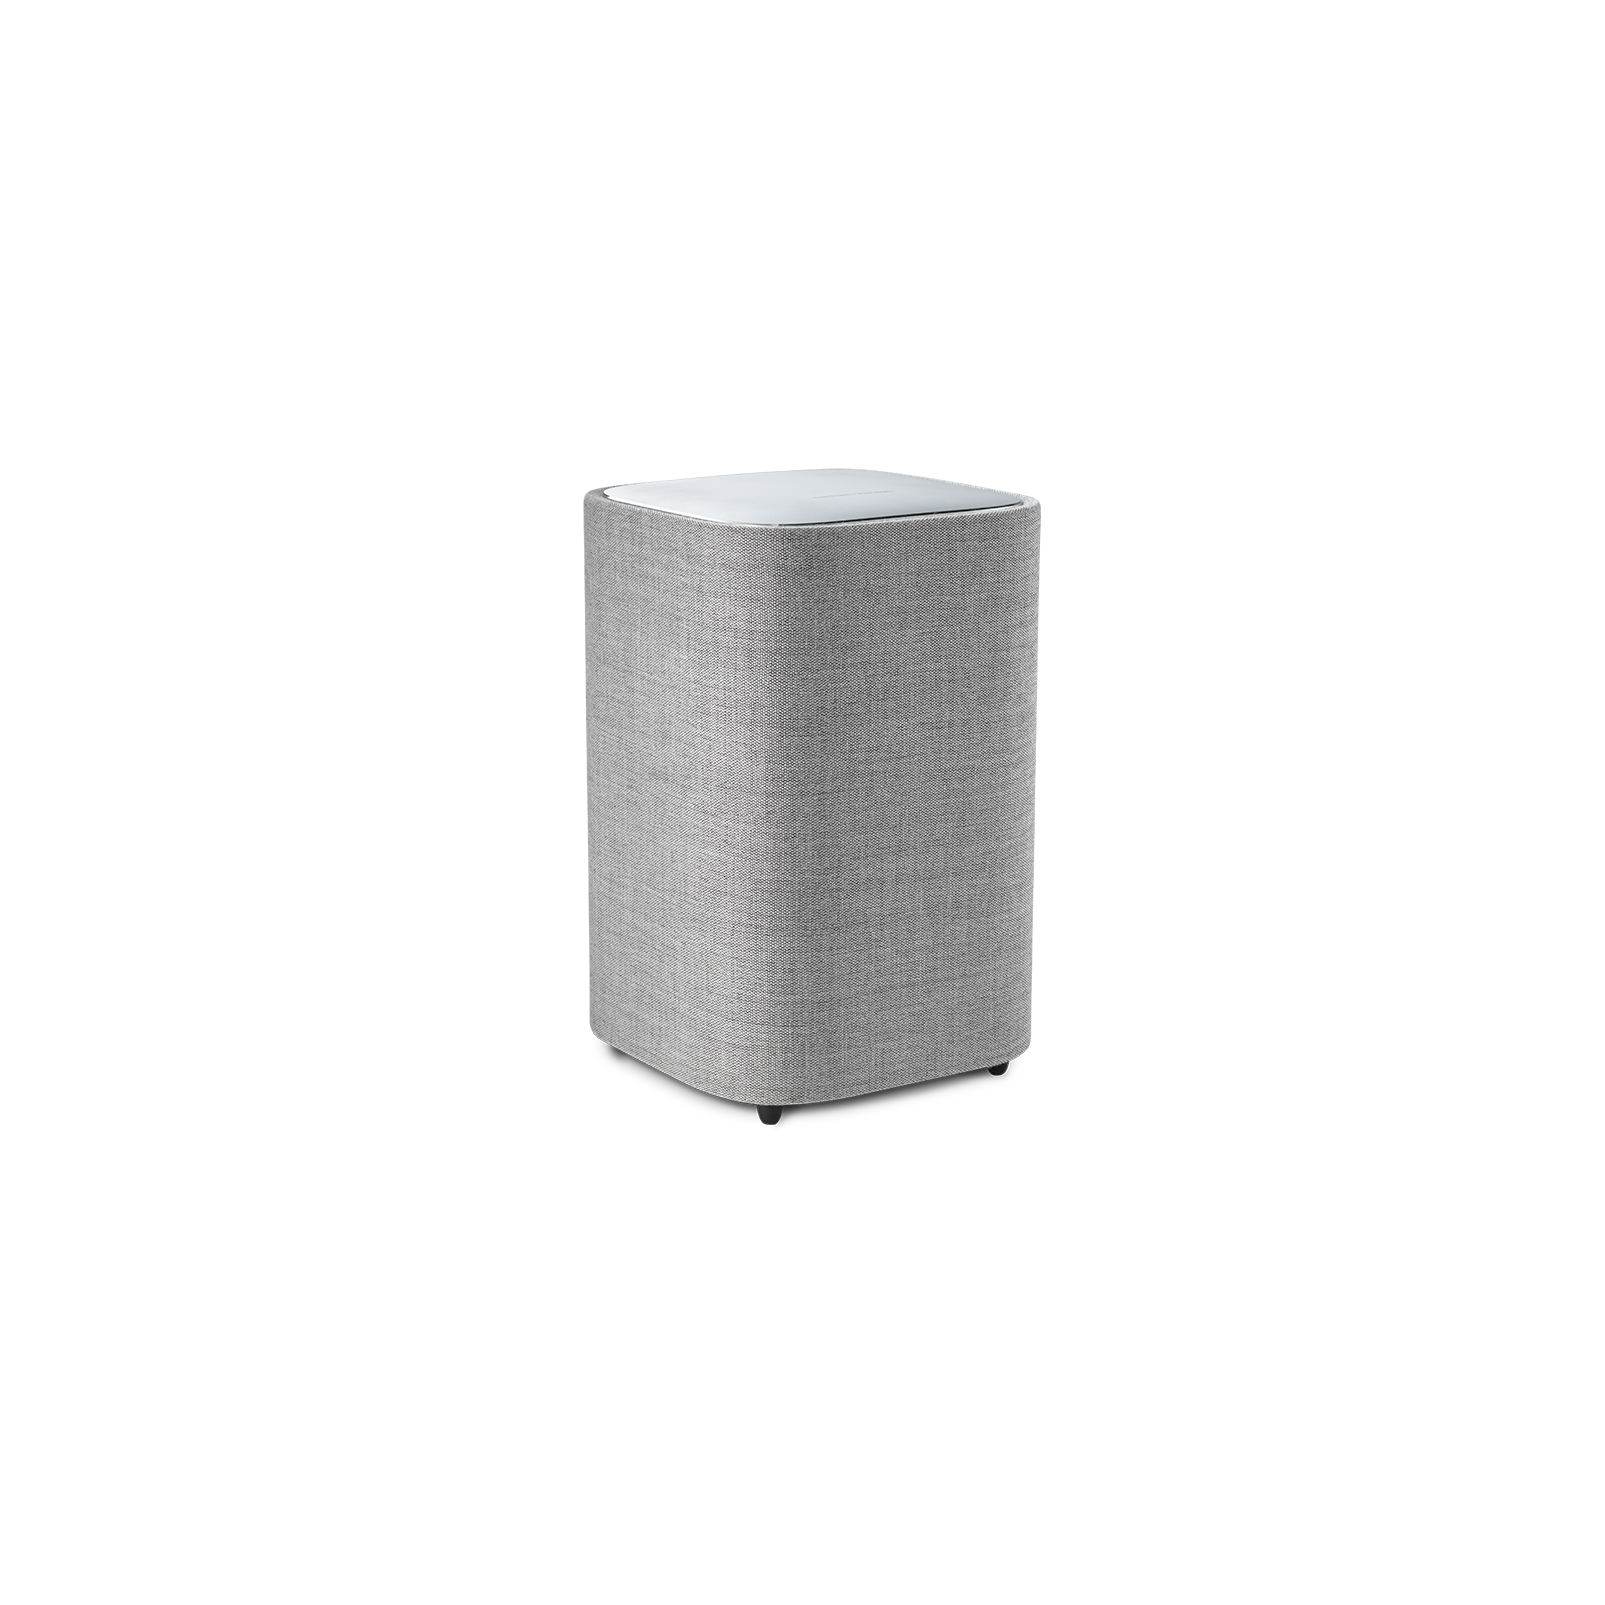 Harman Kardon Citation Sub S - Grey - Compact wireless subwoofer with deep bass - Hero